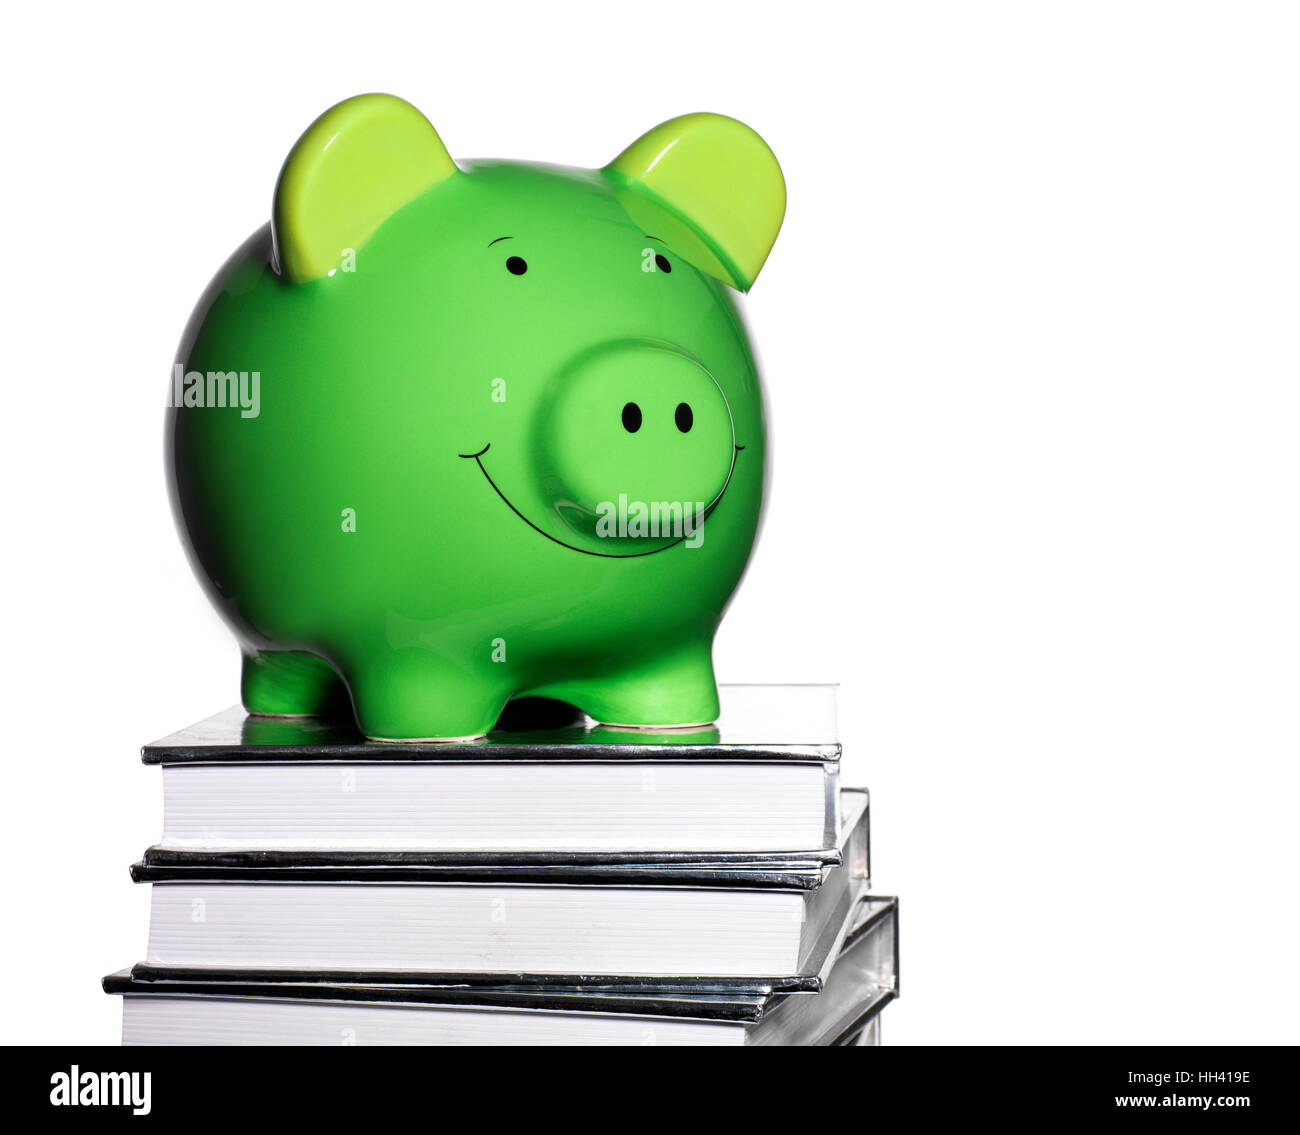 Green Piggy Bank on top a pile of books - Stock Image